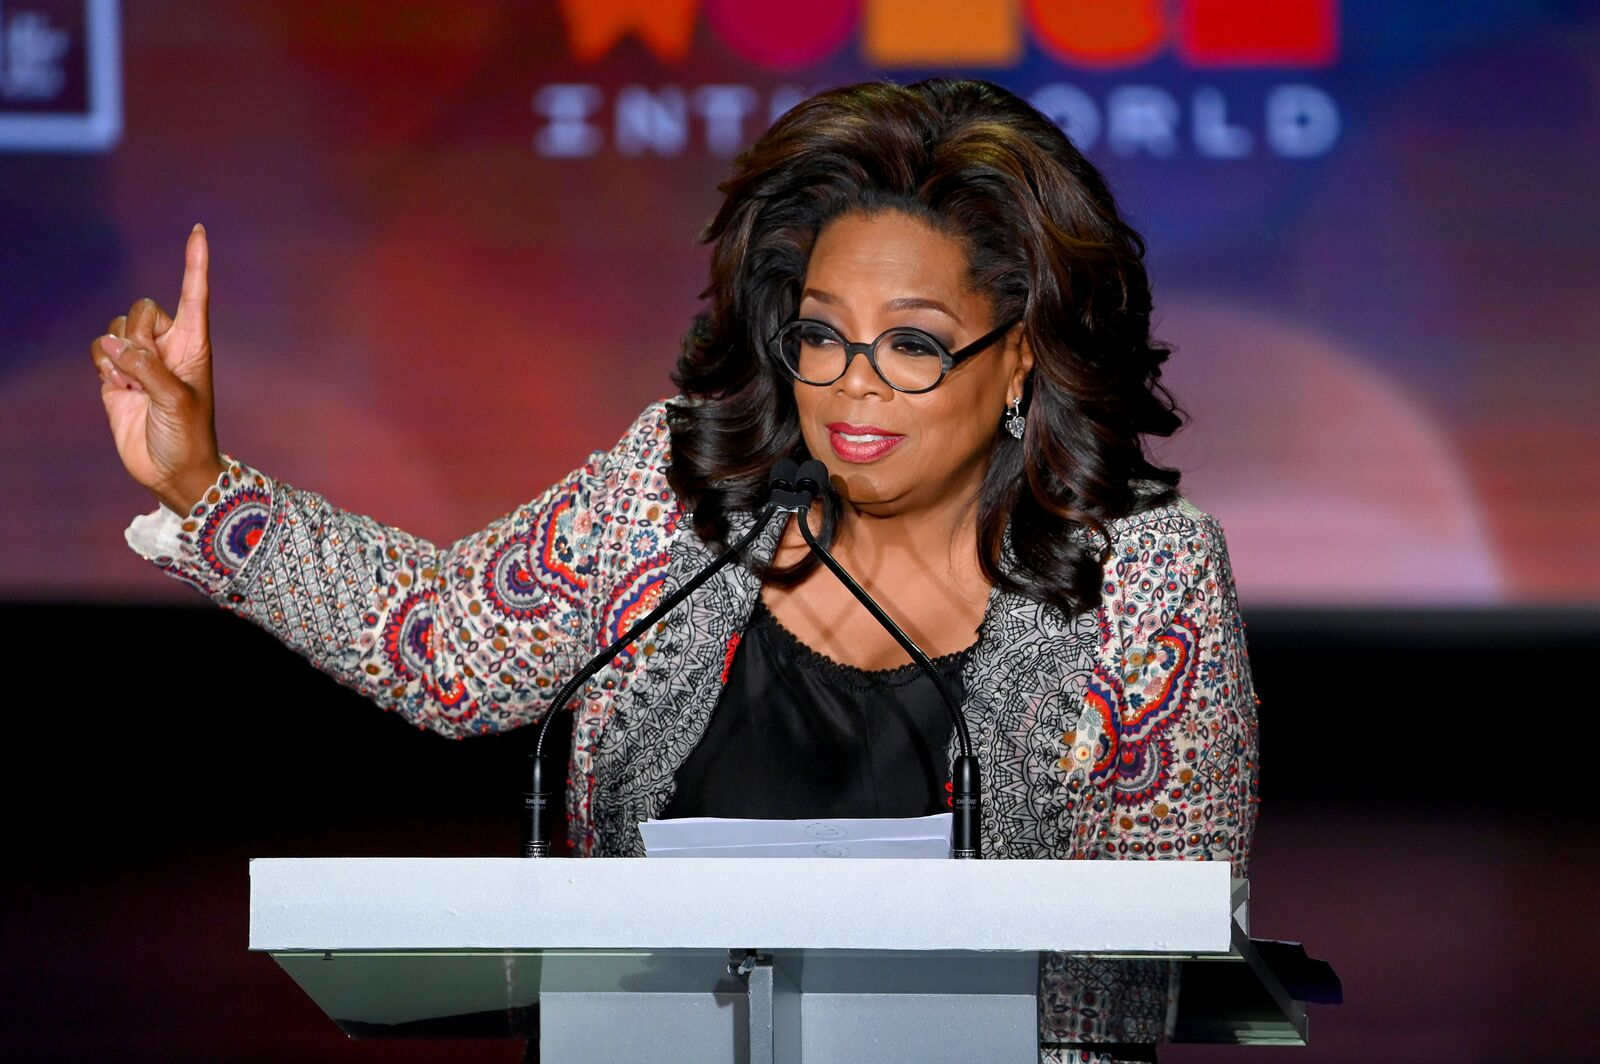 Oprah Winfrey at the 10th Anniversary Women In The World Summit at Lincoln Center on April 10, 2019 in New York City. | Photo: Getty Images